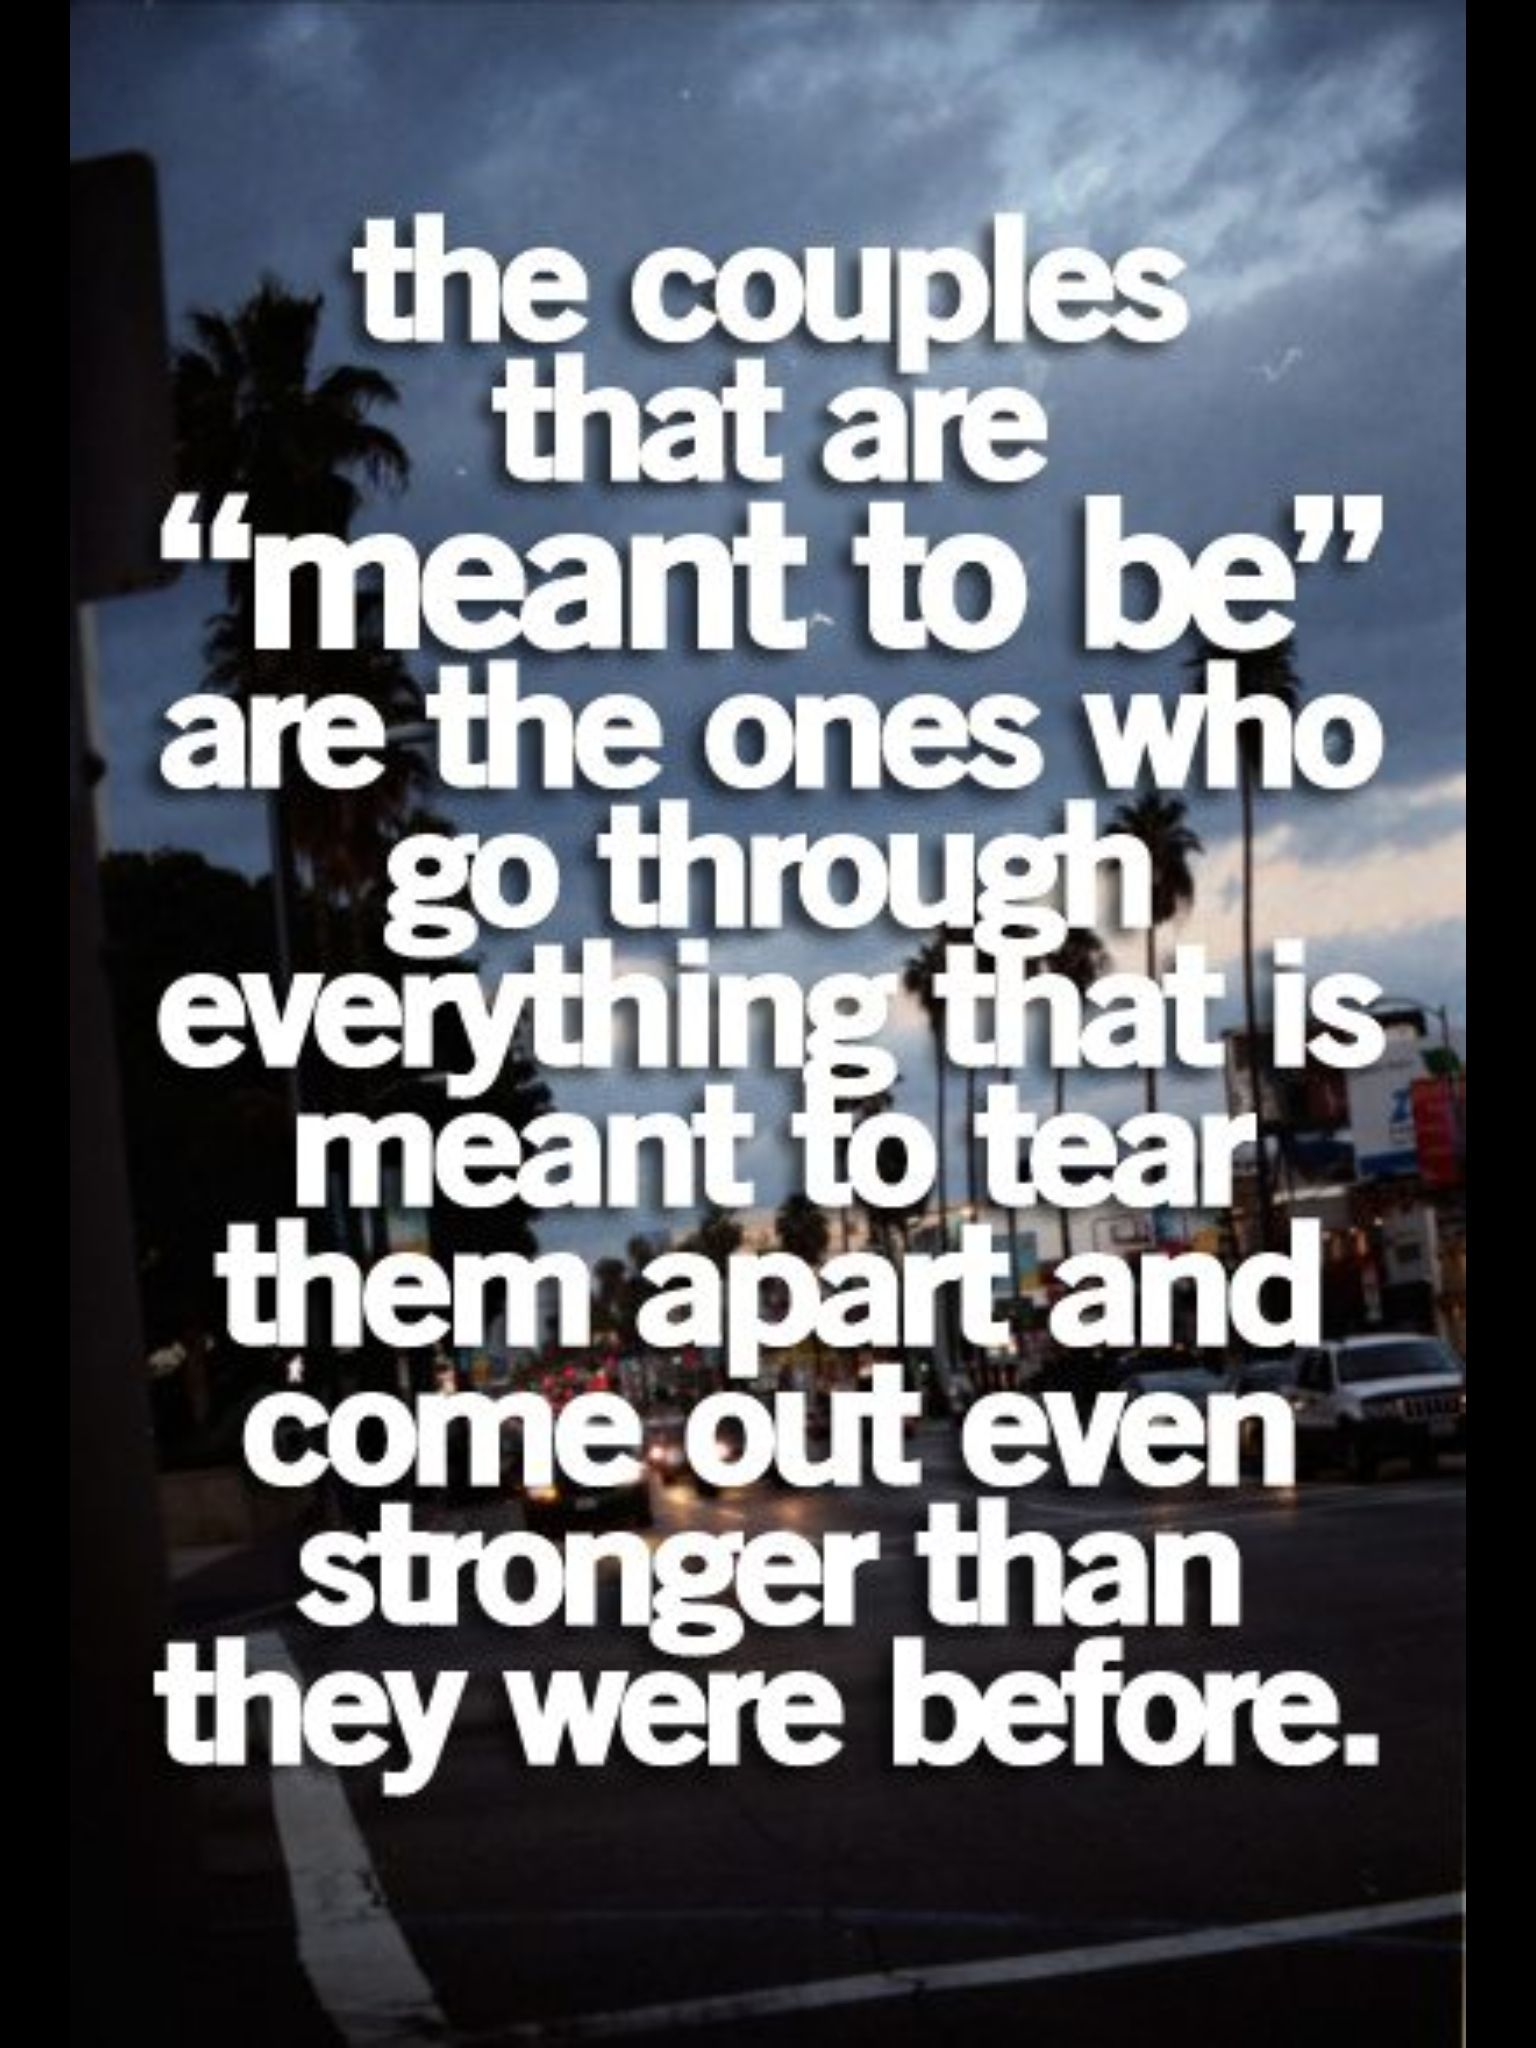 My One And Only Love Quotes Stronger Than They Were Before Quotes  Pinterest  Inspirational